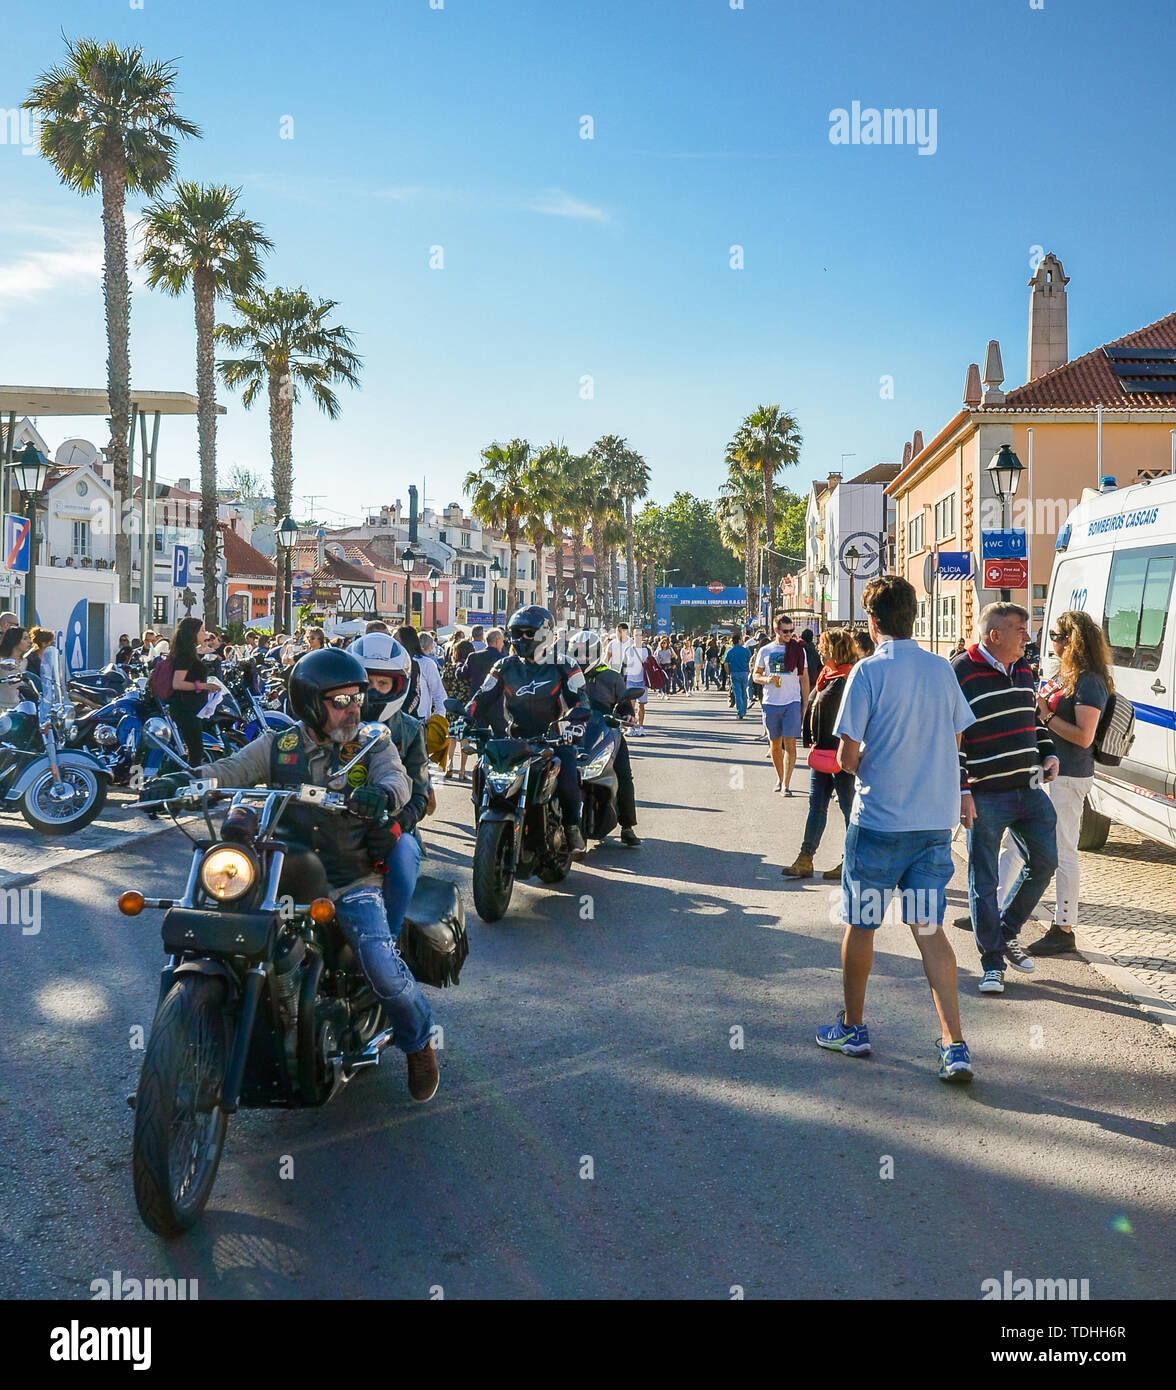 Cascais, Portugal - June 16, 2019: Cascais hosts the 28th Annual European Harley-Davidson H.O.G. Rally from 13-16 June, 2019. The meet up is expected  - Stock Image